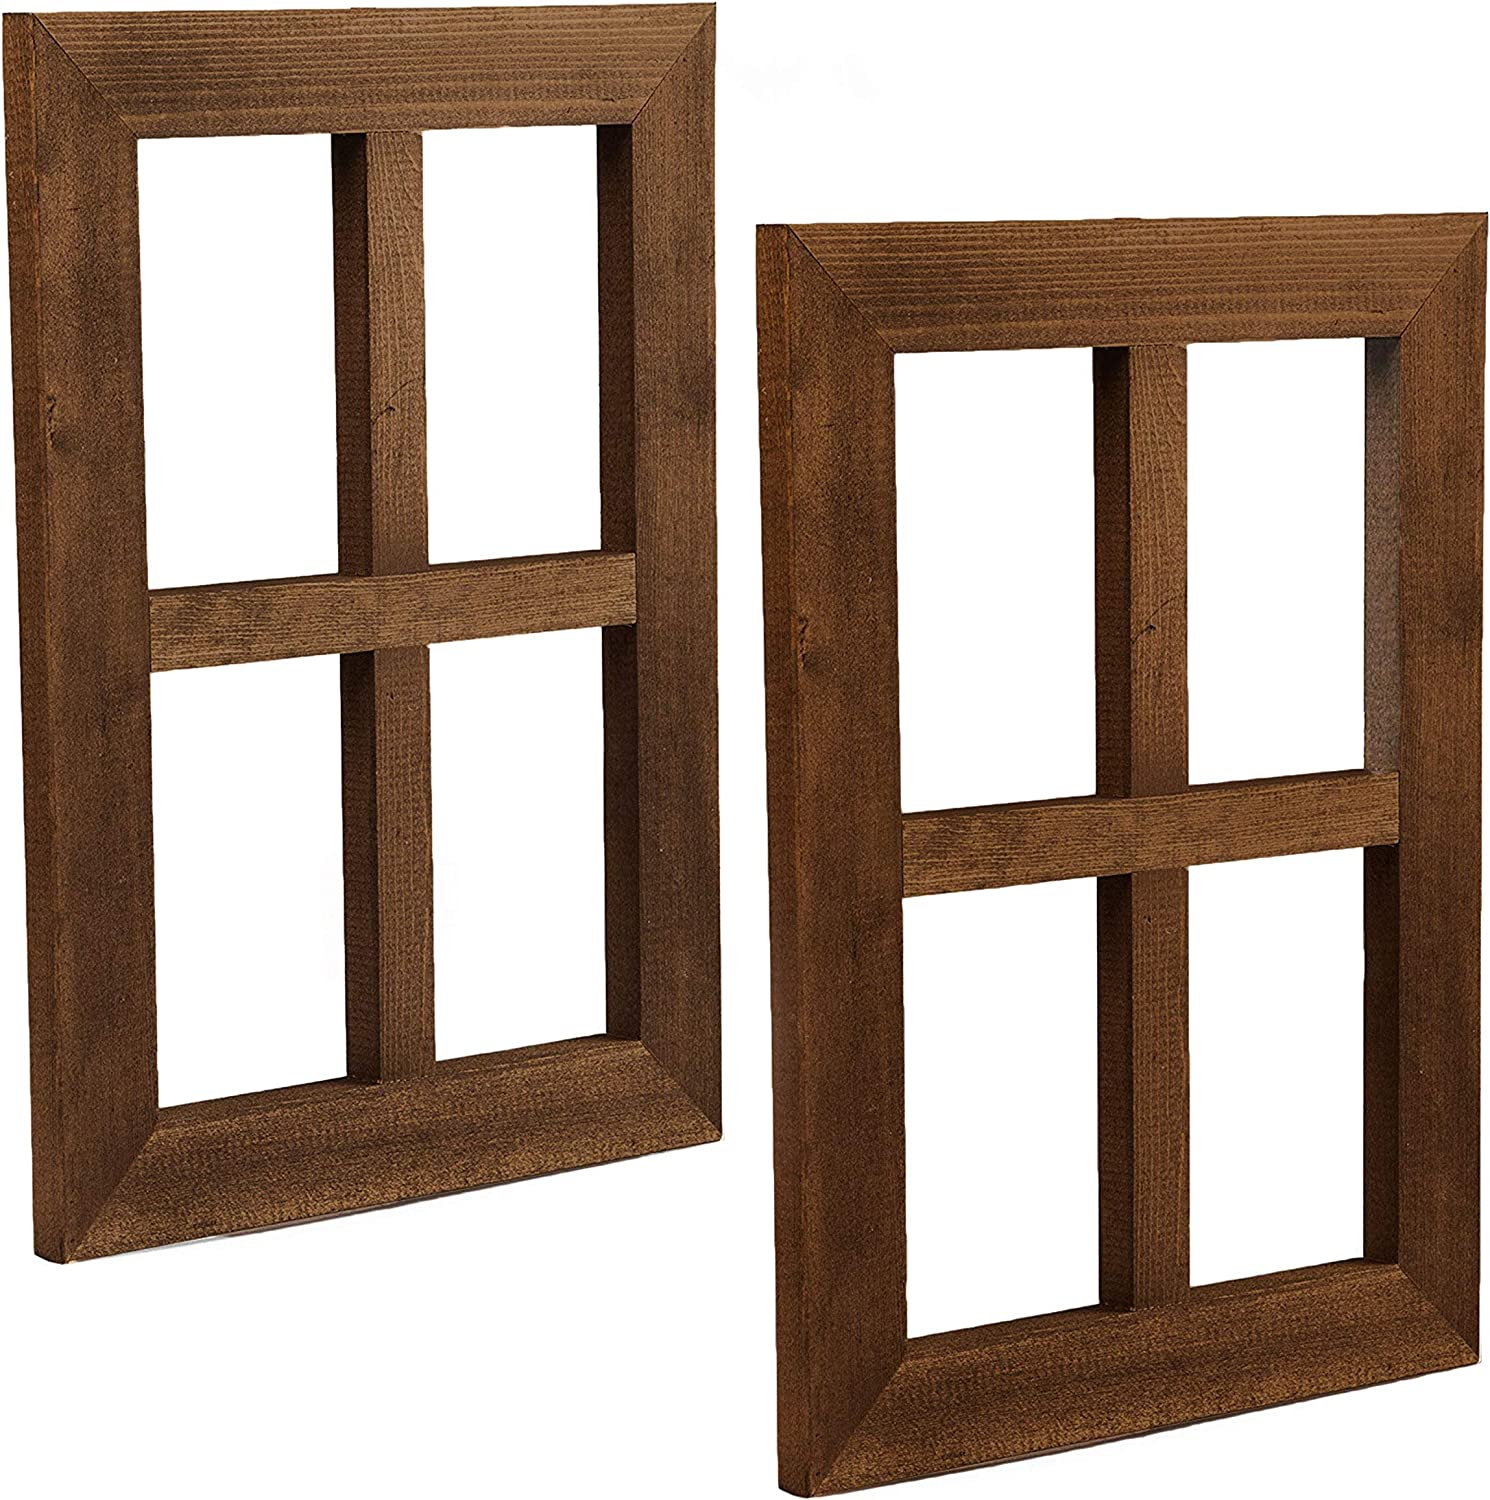 Ilyapa Window Frame Wall Decor 2 Pack - Rustic Espresso Wood Window Pane Country Farmhouse Decorations